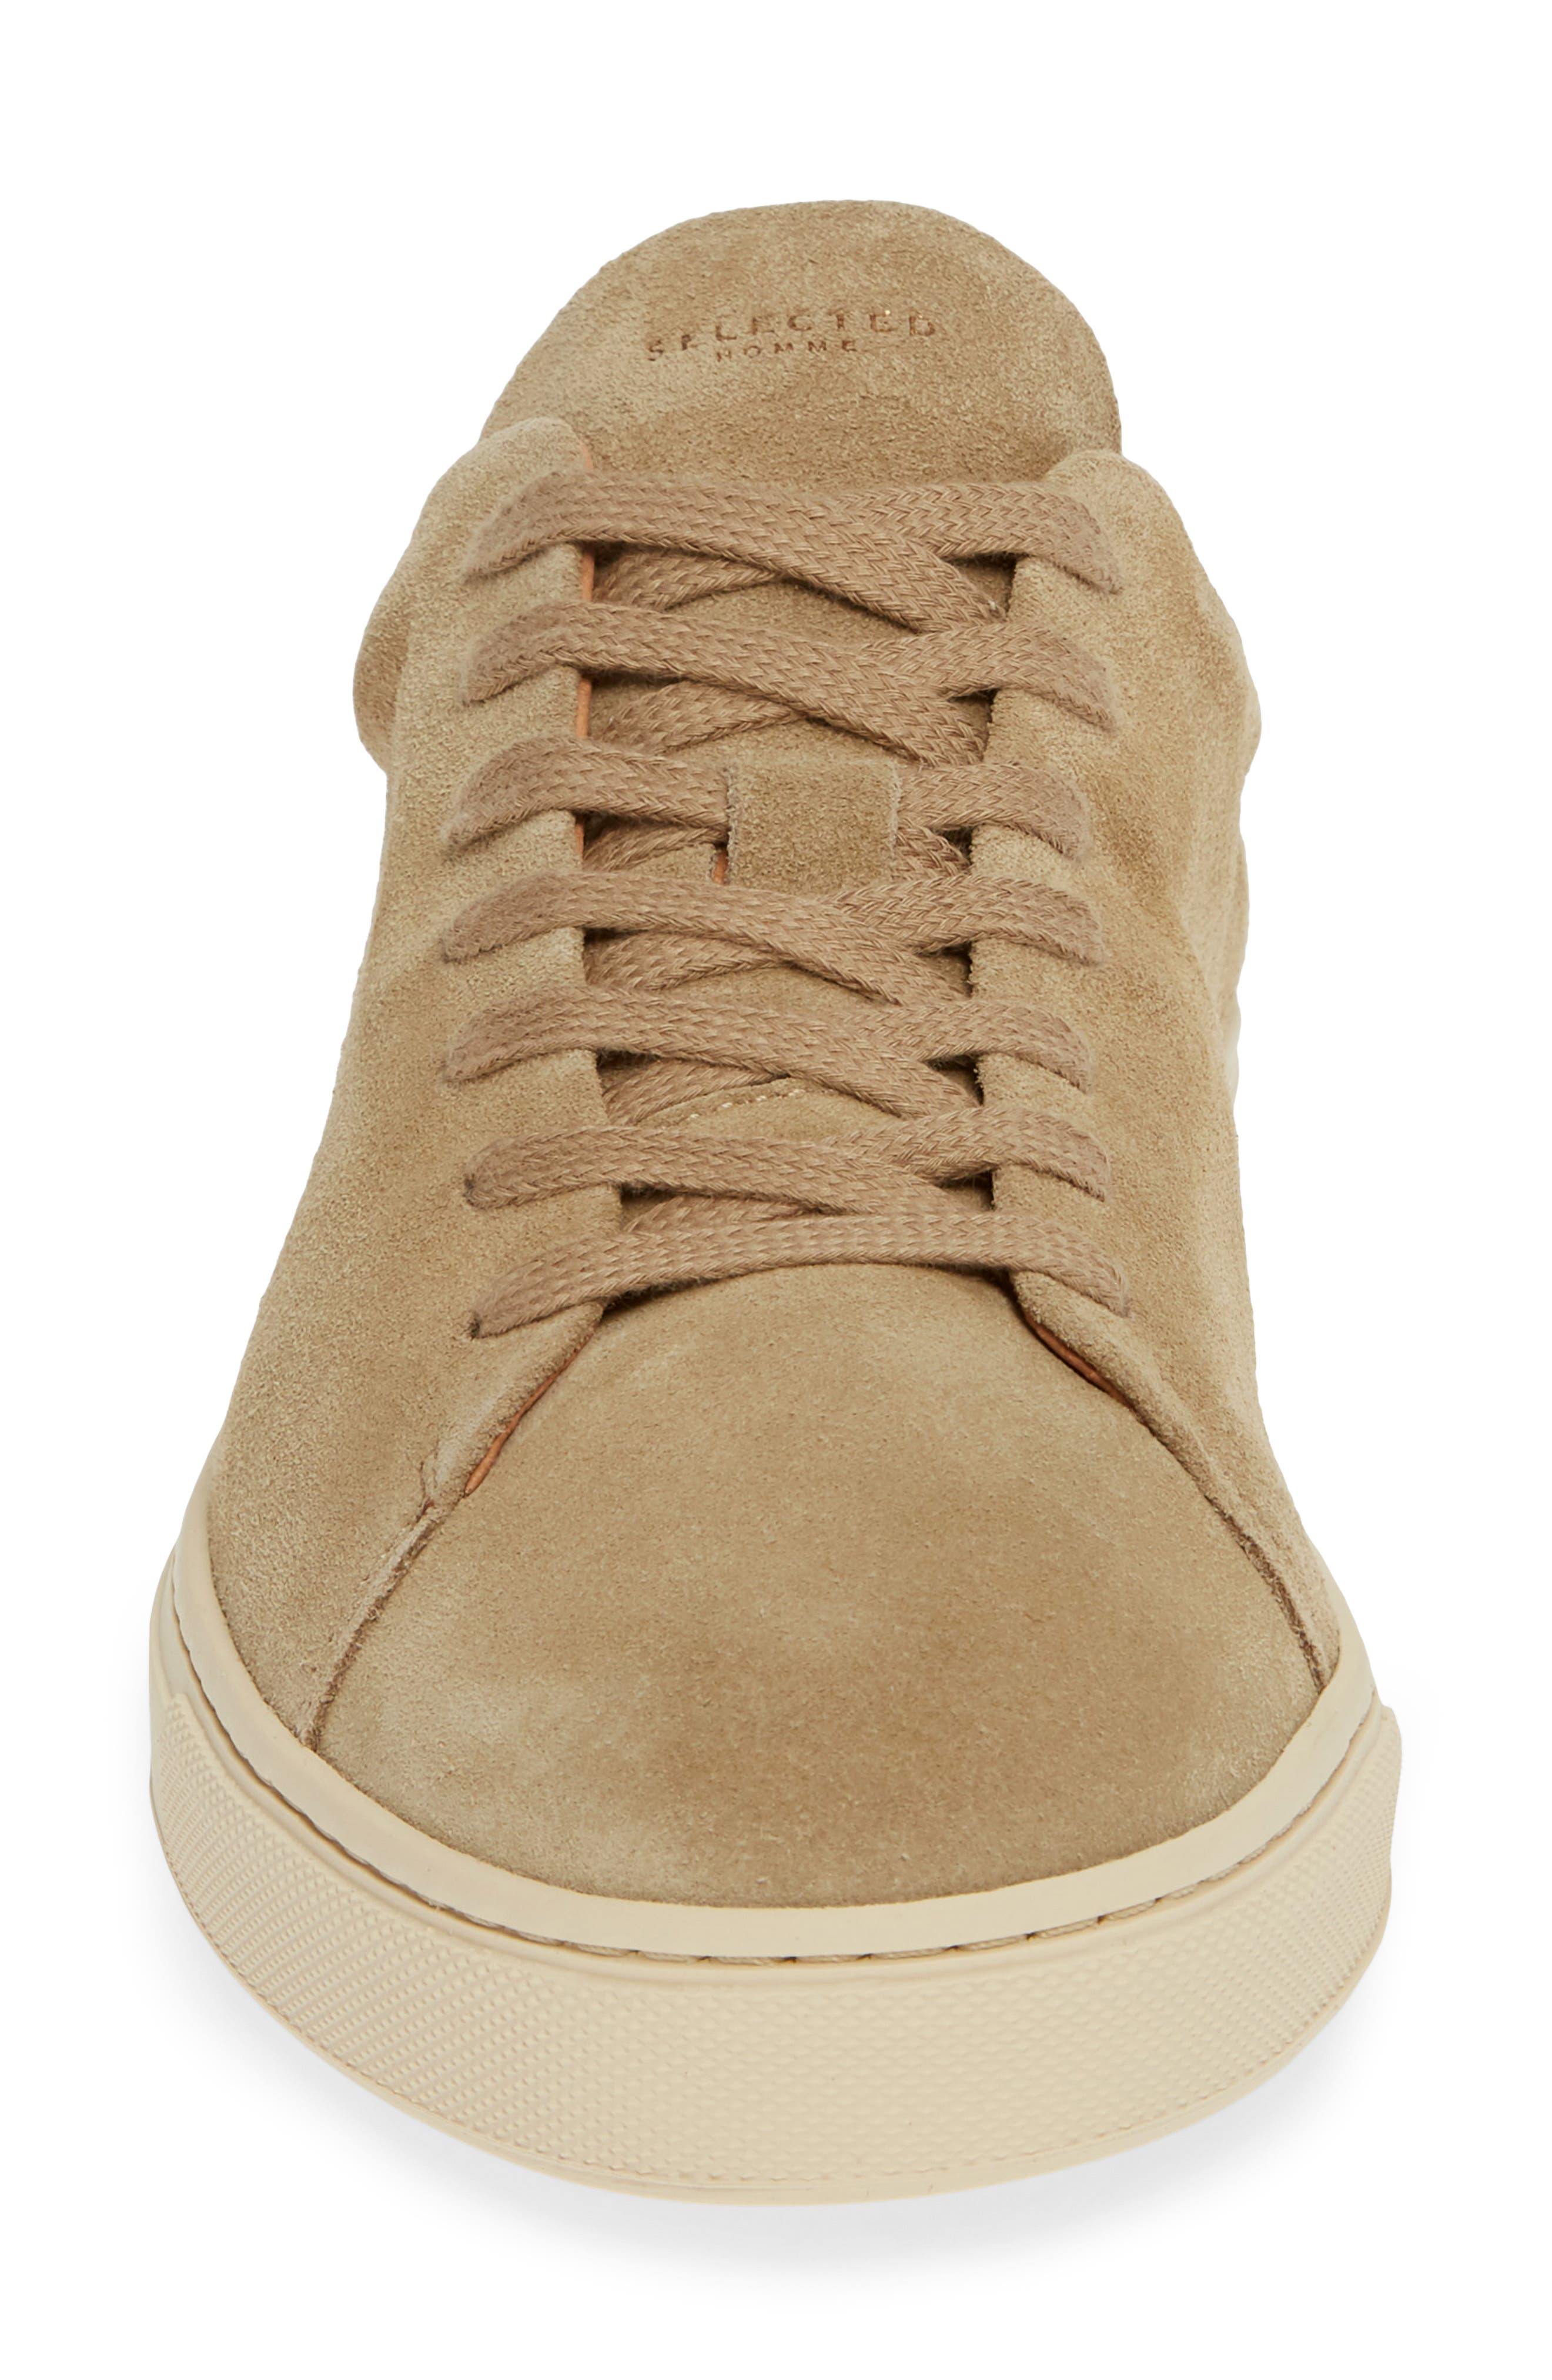 Selected Home David Low Top Sneaker,                             Alternate thumbnail 4, color,                             SAND SUEDE